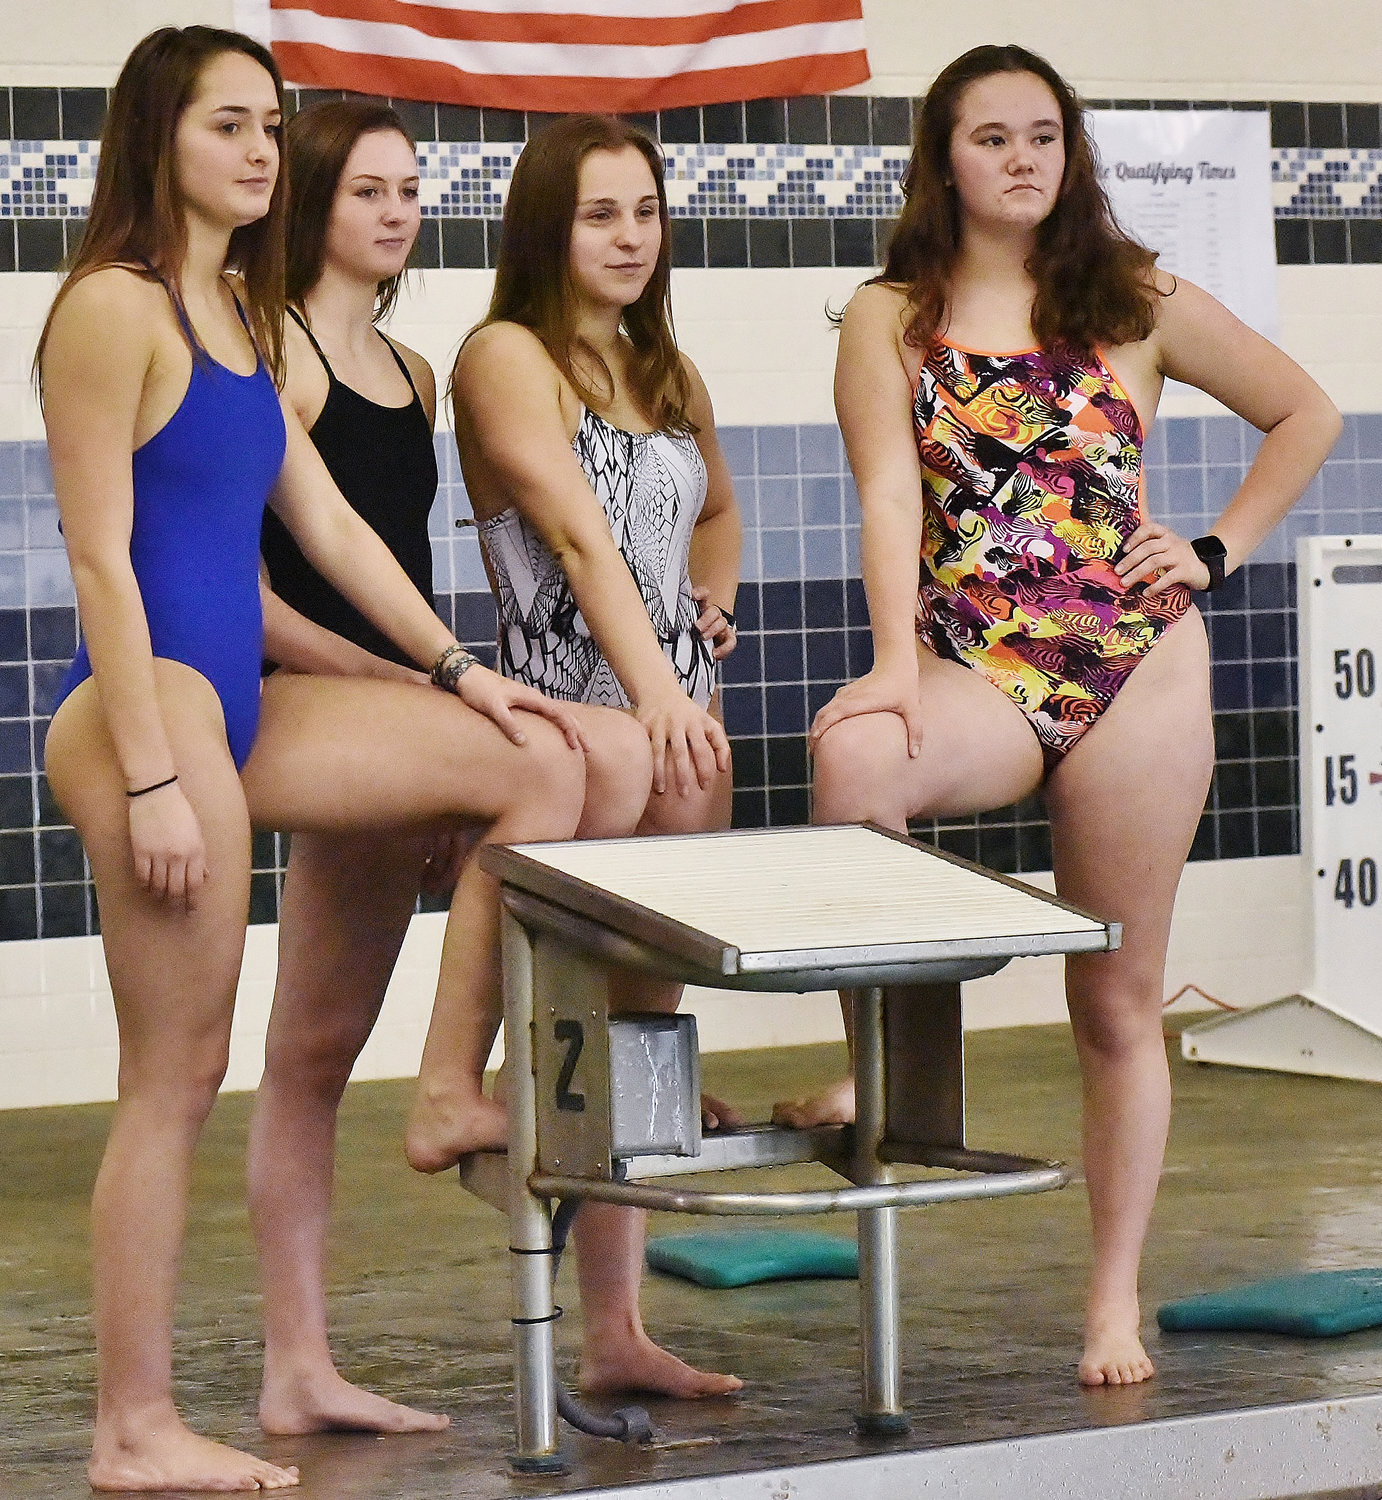 Adairsville swimmers, from left, Mallory Cook, Harper Powell, Rylee Moss and Kayleigh Rice stand on the pool deck during a recent swim practice at the high school's pool. The group was the first Adairsville girls team in school history to reach the GHSA state swim championships in a relay event and ended up qualifying in all three. On Friday, they cut times in the state prelims to reach Saturday's finals in the two relay events in which they competed.